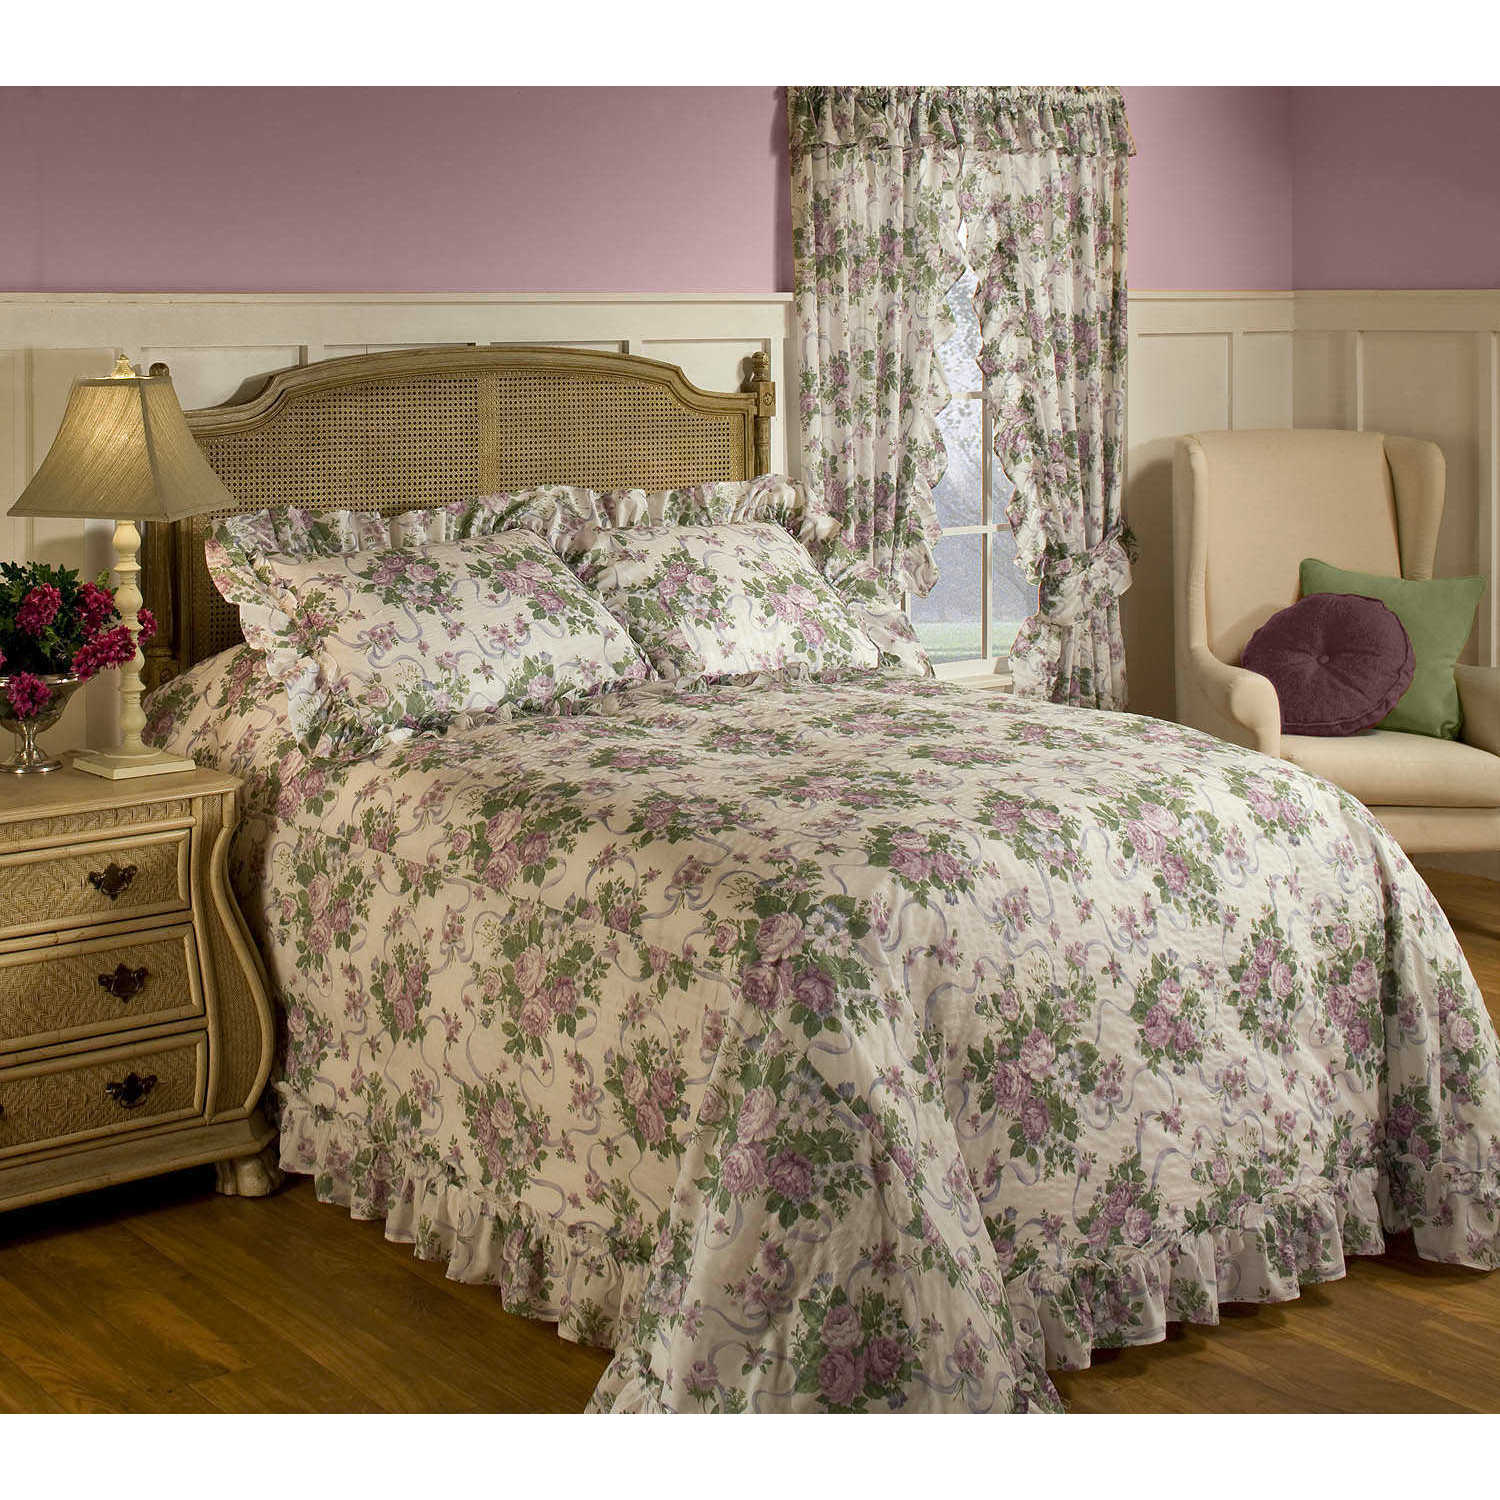 Madison The Gray Barn Crooked Creek Floral Bedspread (Twi...